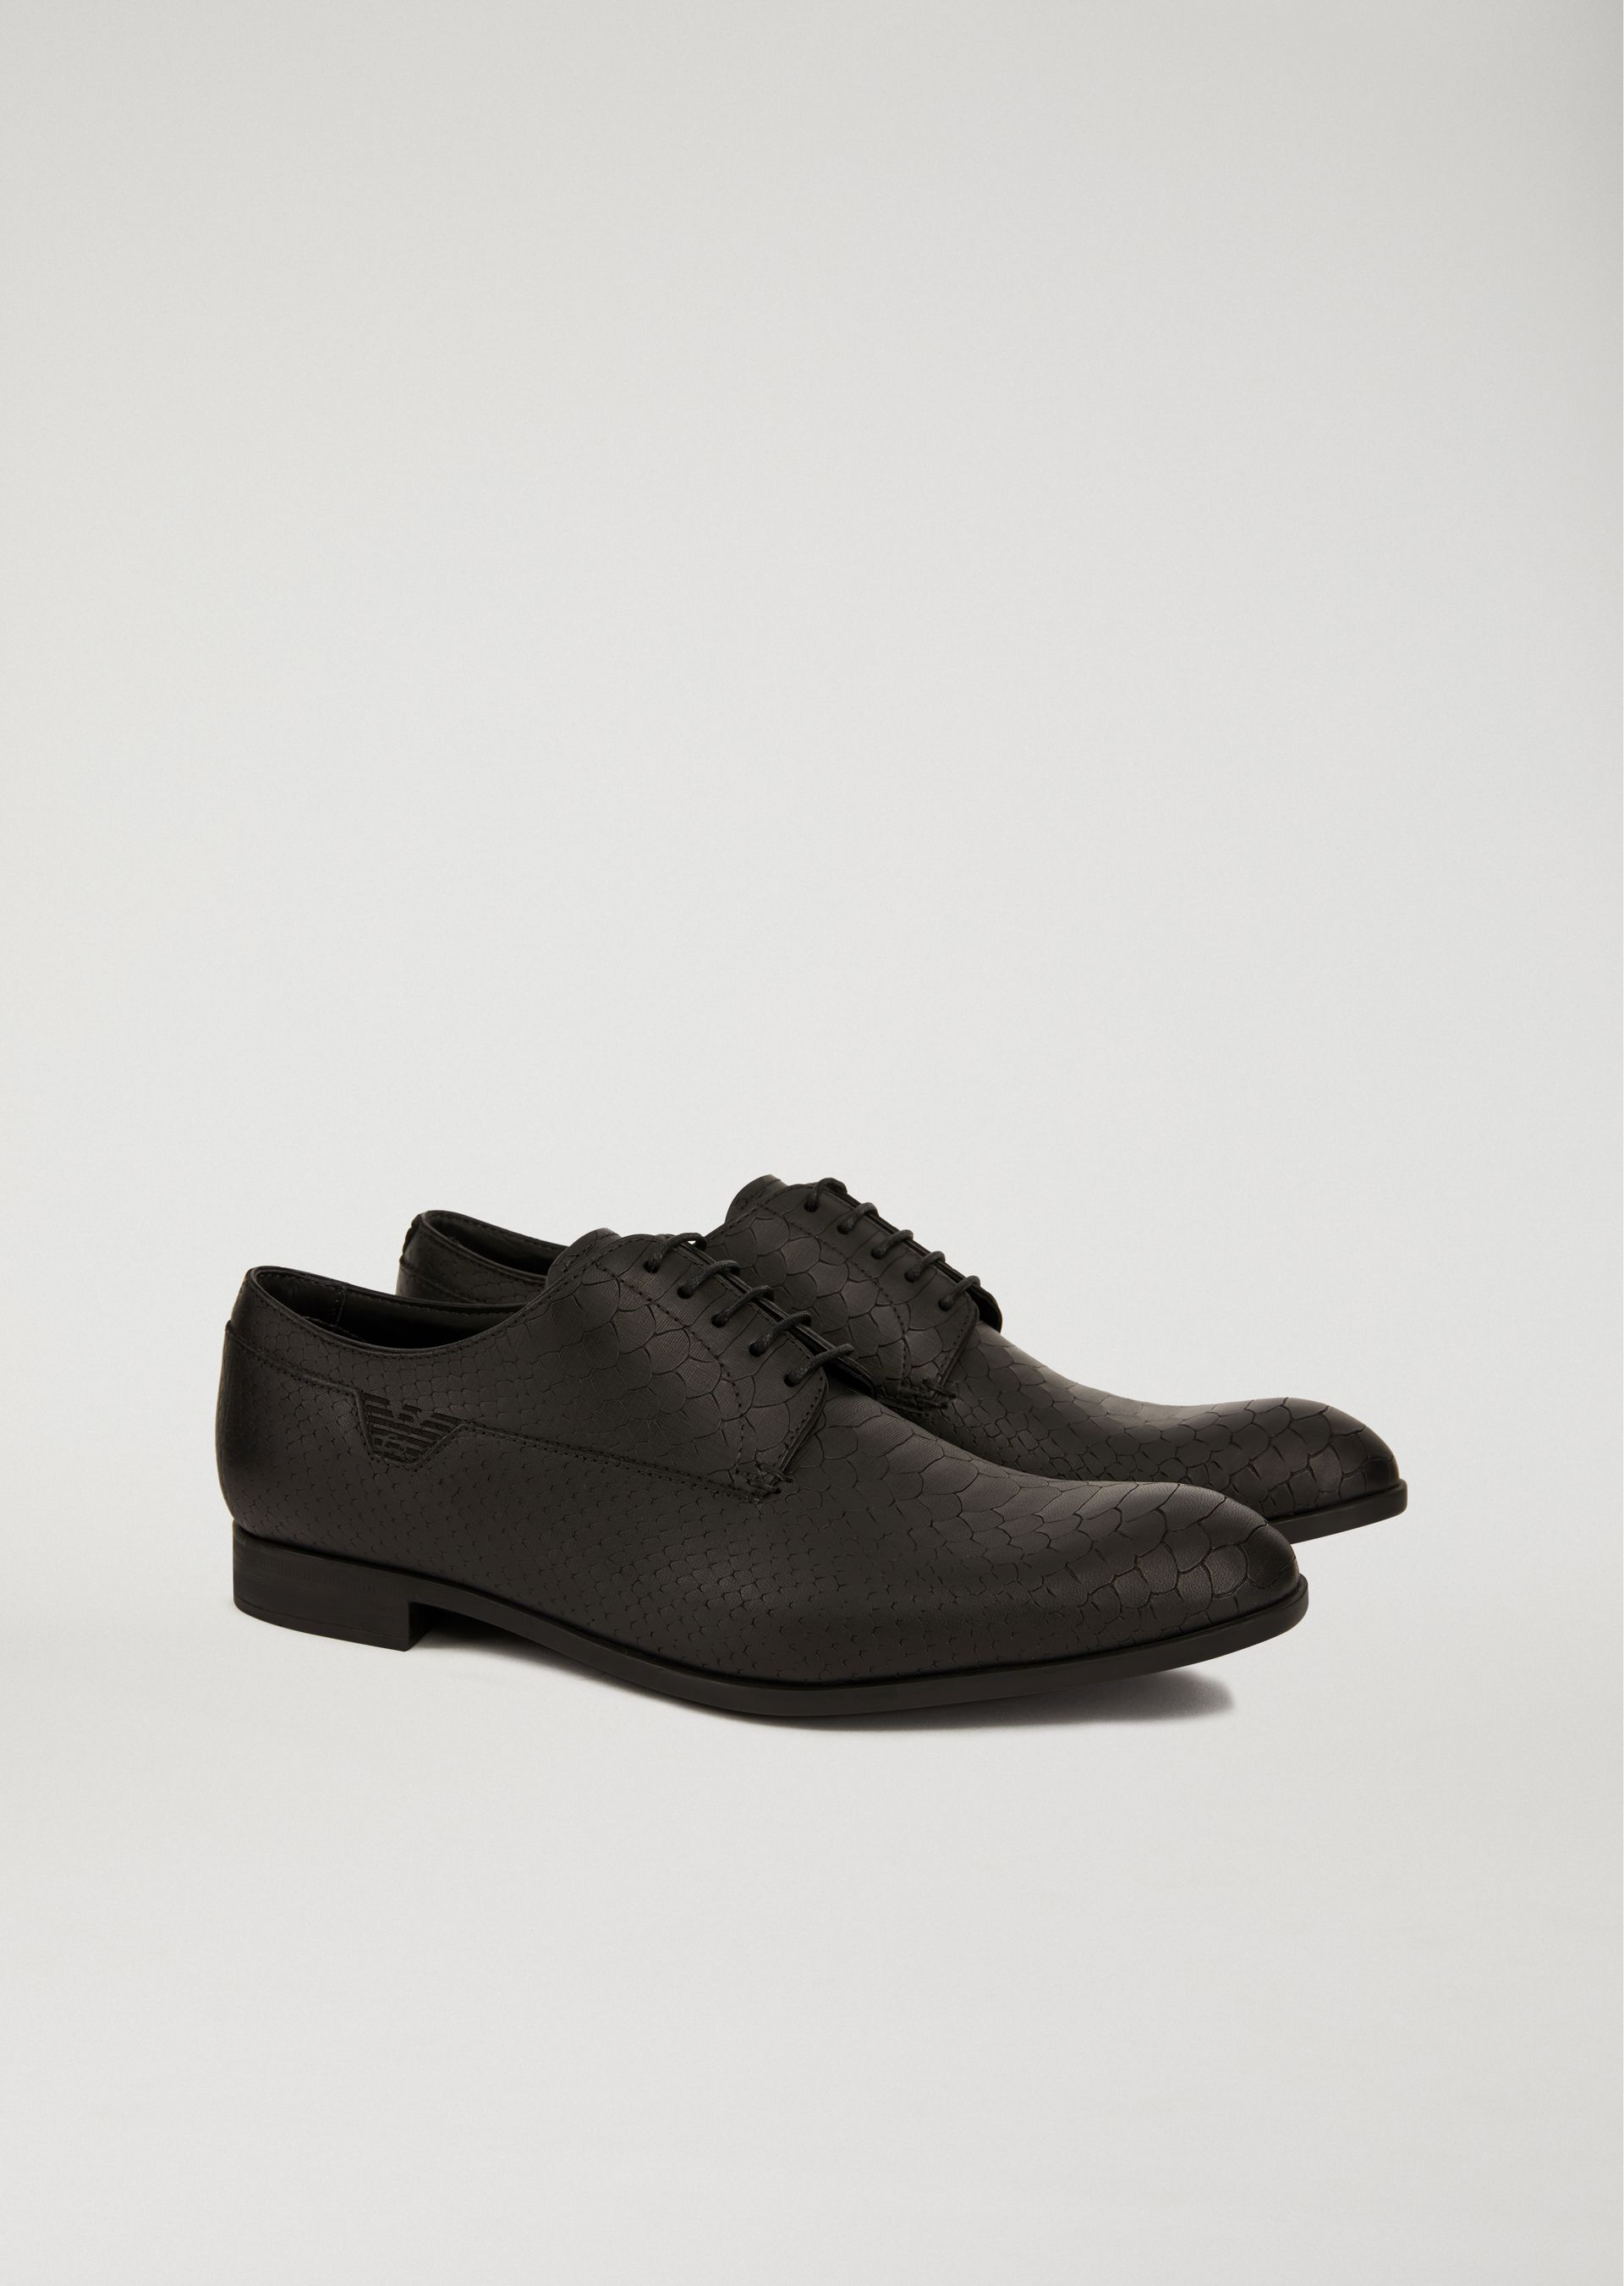 OFFICIAL STORE EMPORIO ARMANI - Chaussures - Chaussures à lacets on armani.com